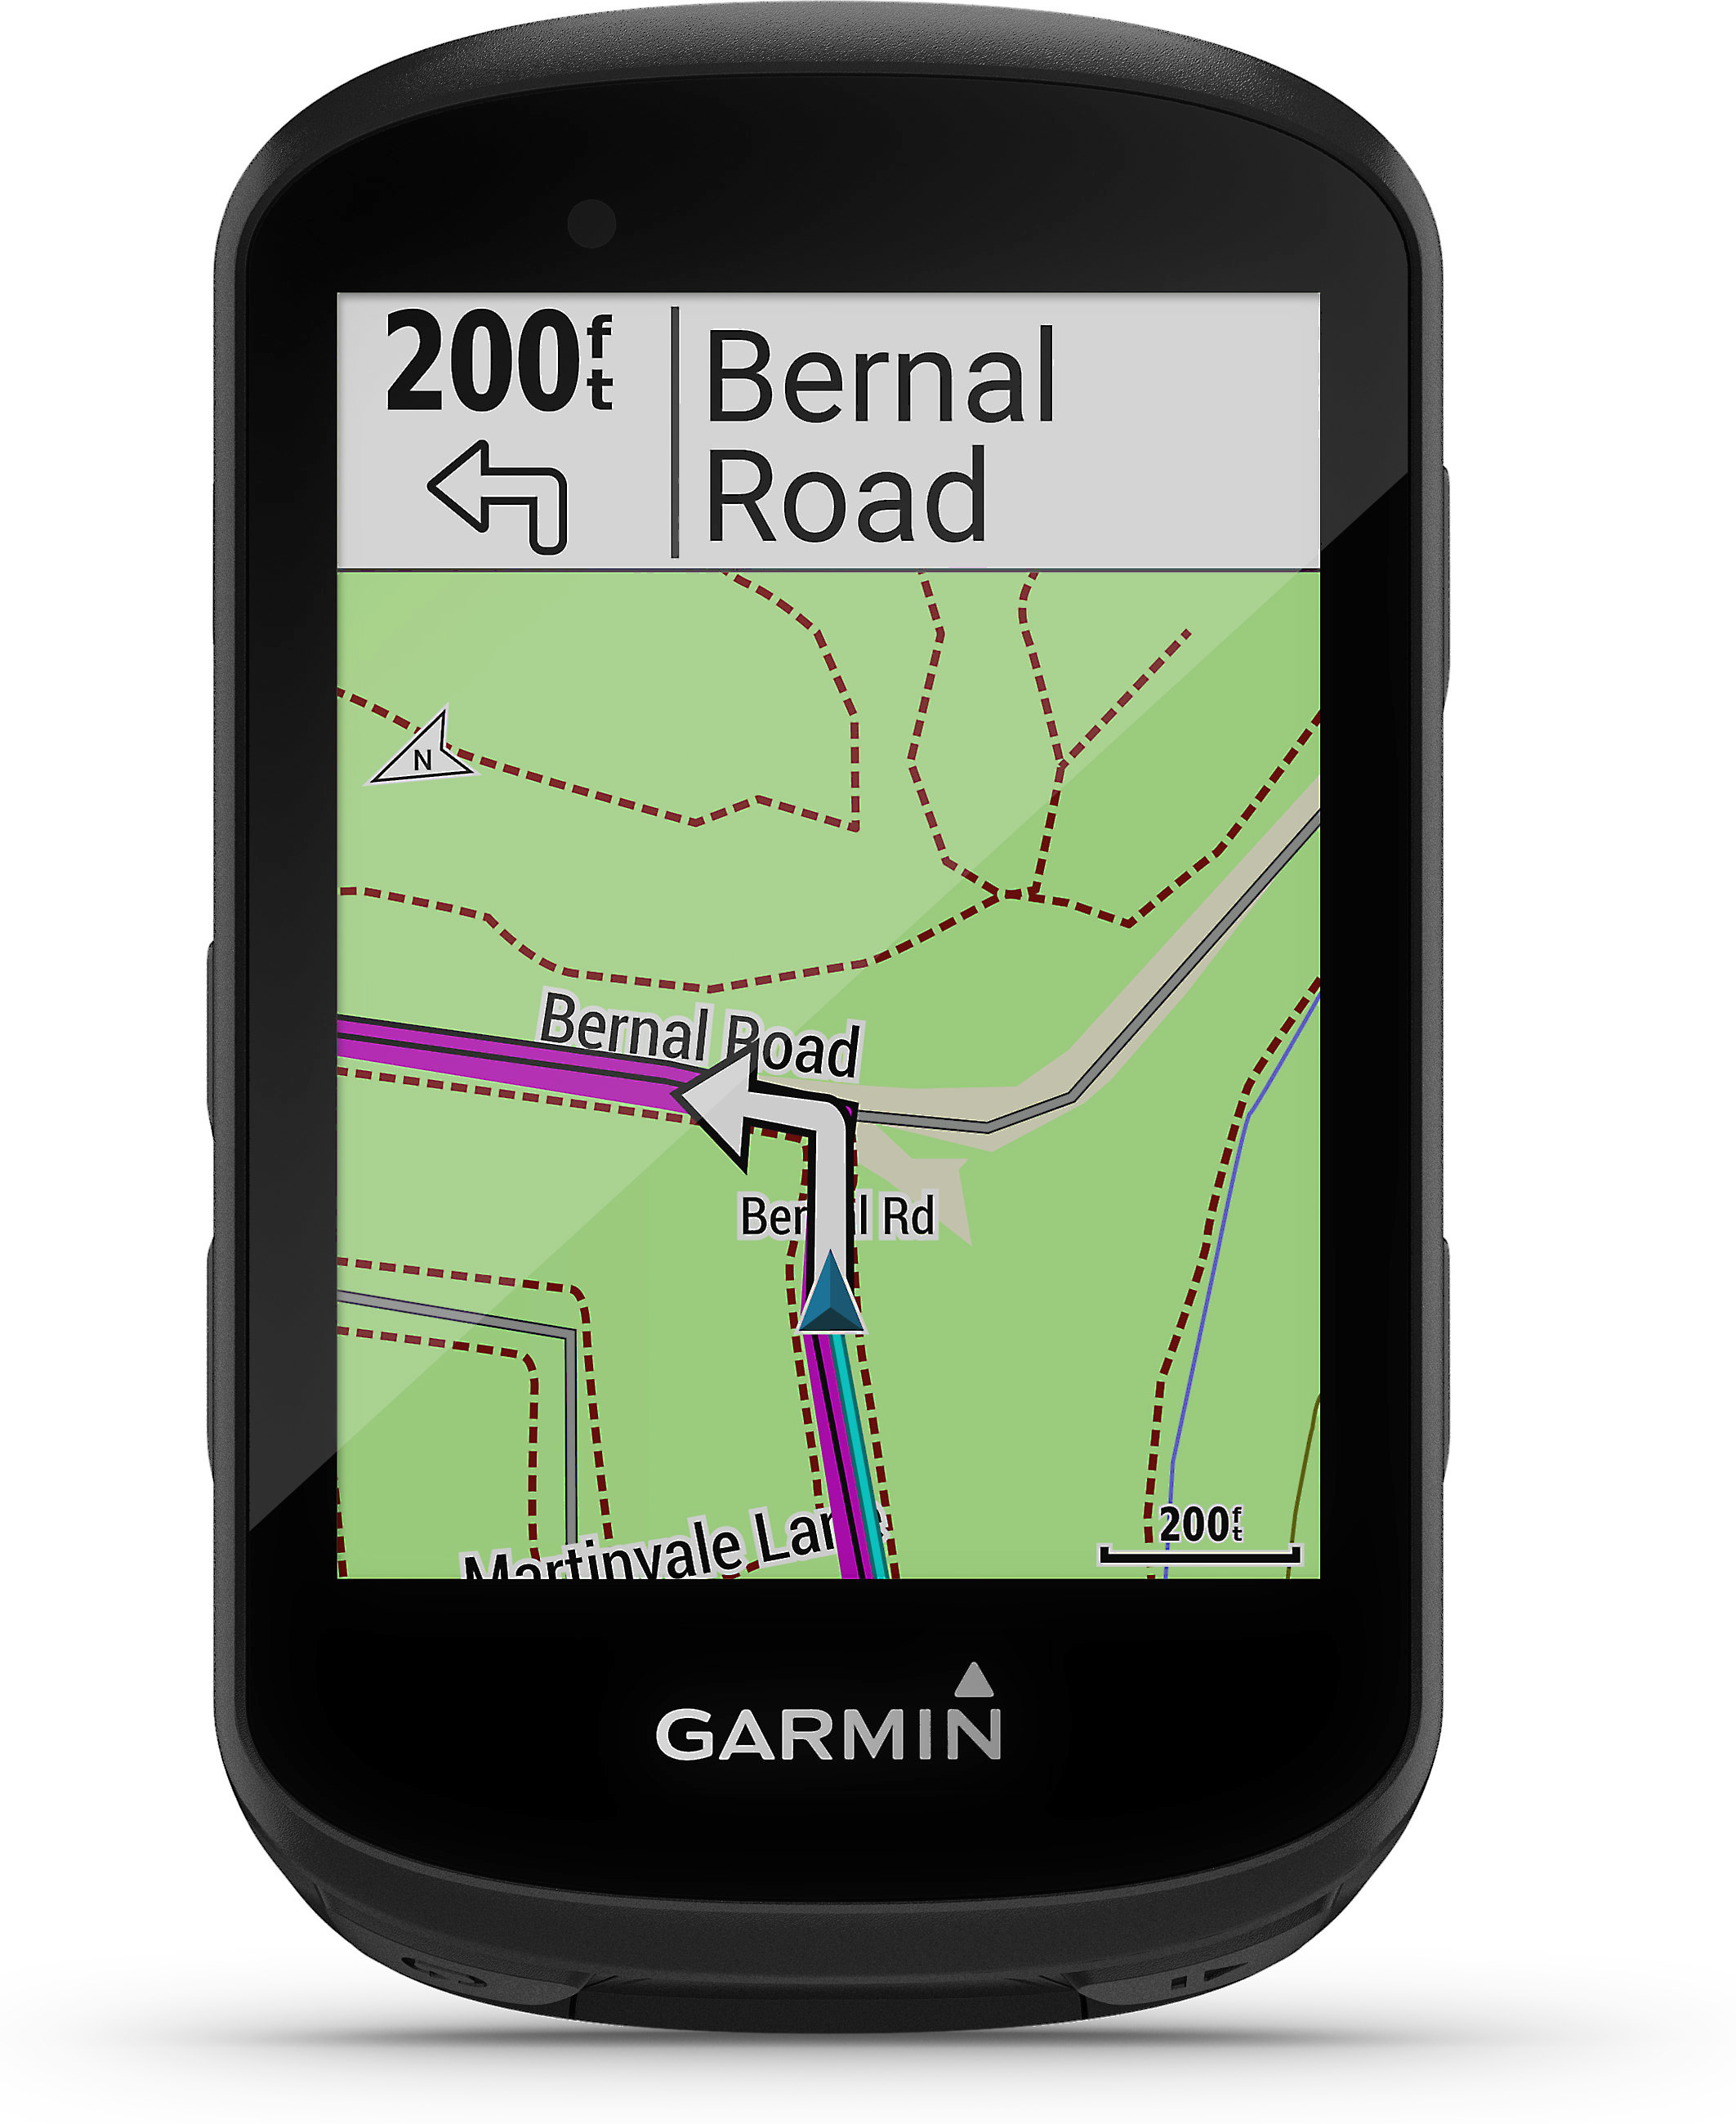 Garmin 182c Wiring Diagram - Wiring Diagram M1 on